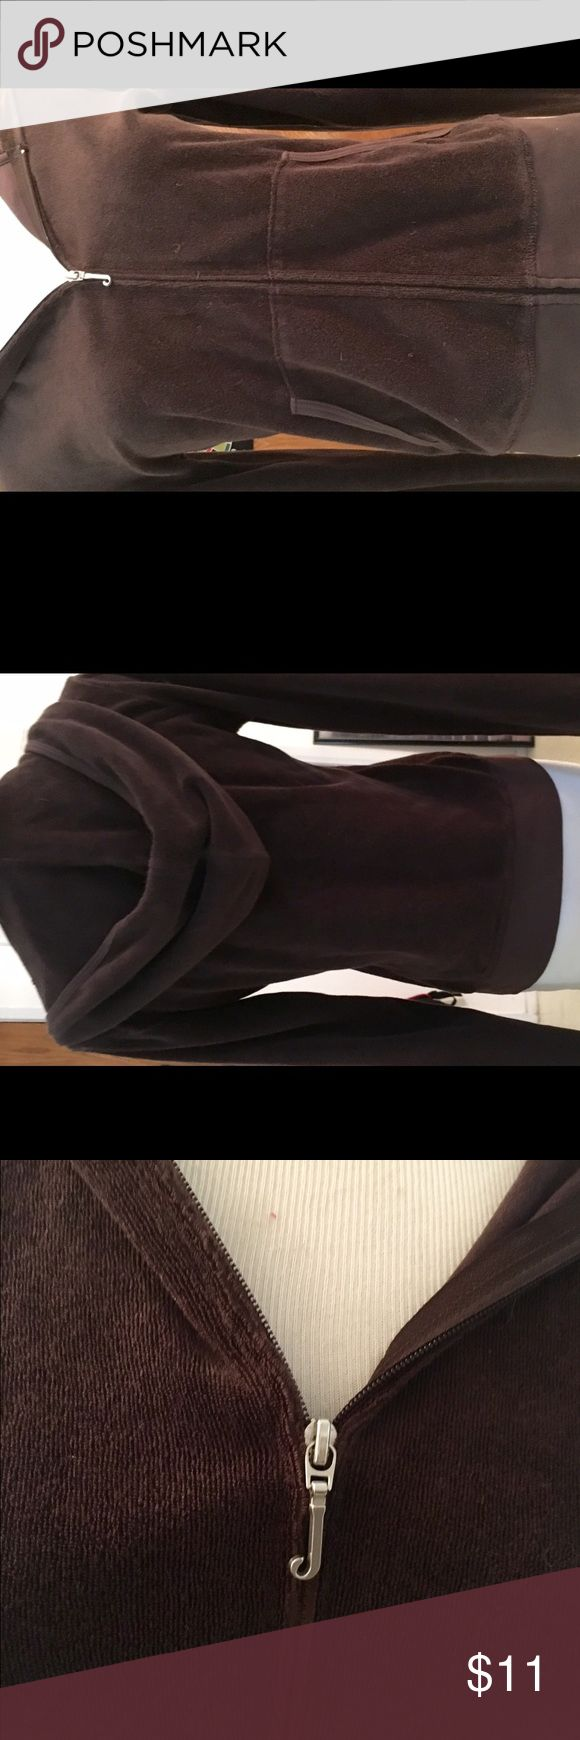 Juicy Couture Brown Zip Up Hoodie Juicy Couture chocolate brown zip up hoodie. Gently used. No rips, tears or stains.  Very good condition. Nice color. Really cute!  I originally listed this as velour, but occurred to me it's terry cloth. Sorry for any confusion ☹️ Juicy Couture Tops Sweatshirts & Hoodies